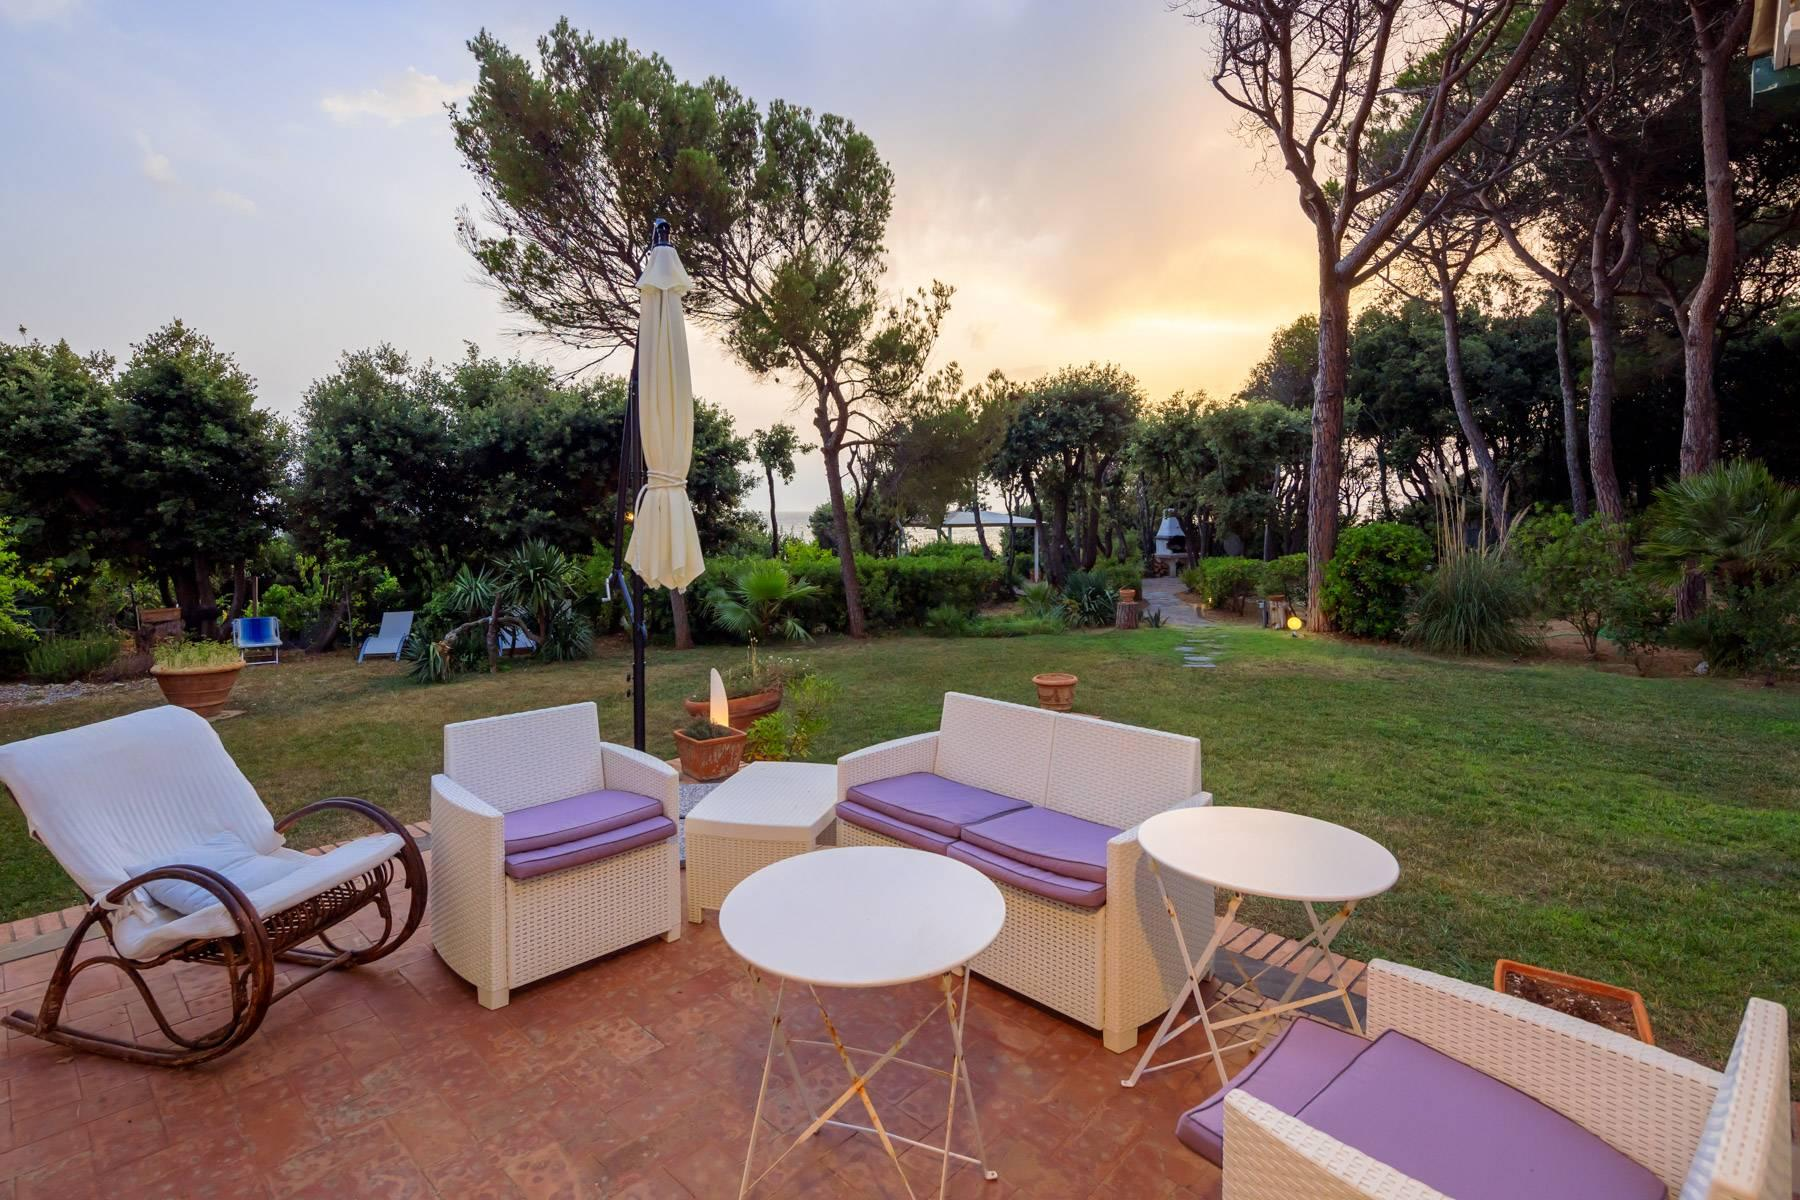 Apartment with private garden and access to the sea in a historic villa - 16